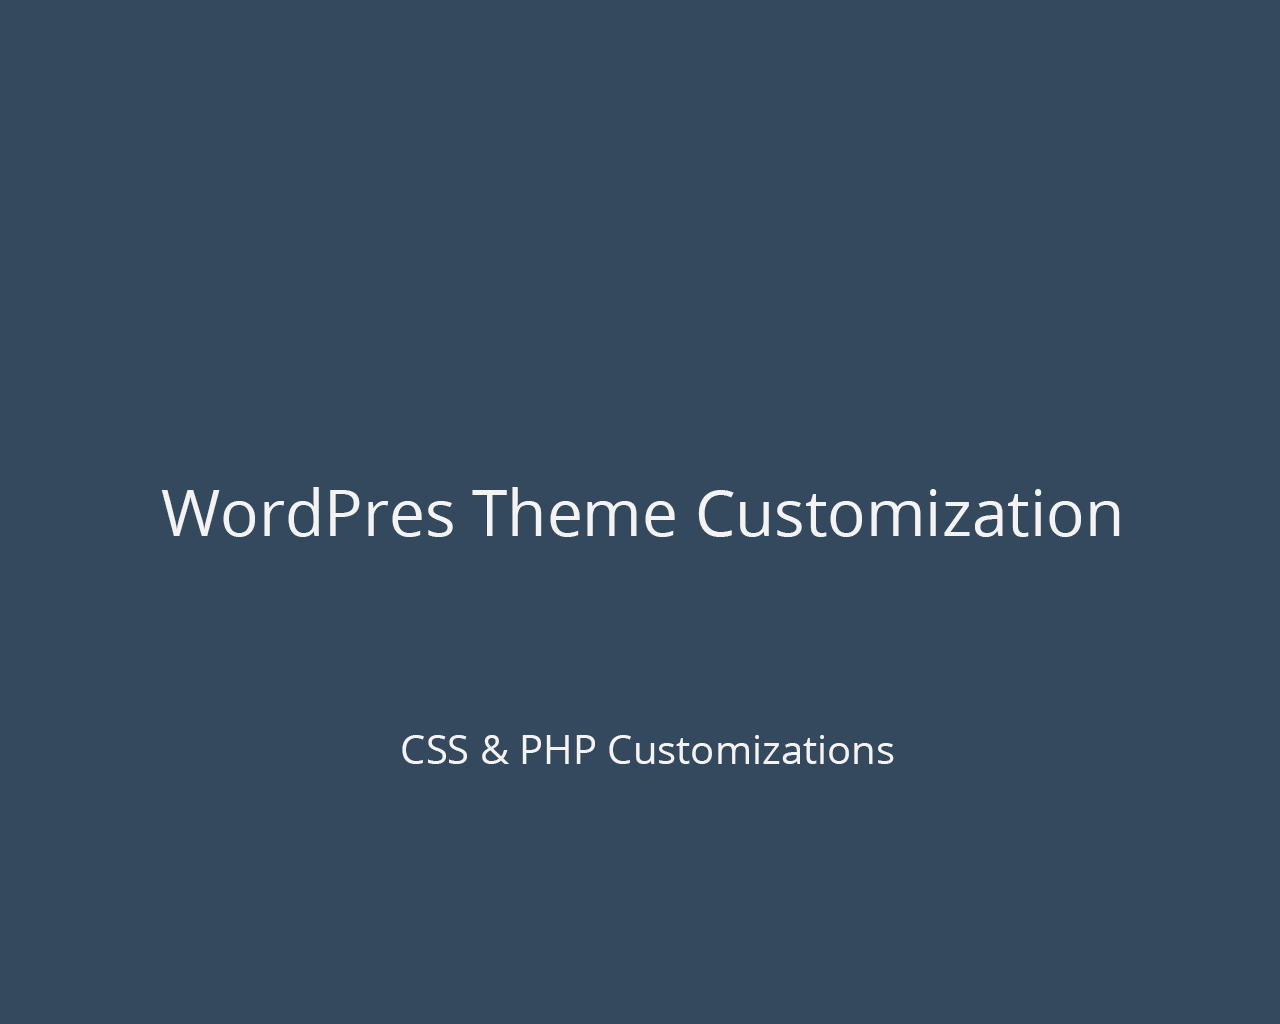 WordPress Theme Customization by DevPlus31 - 78350